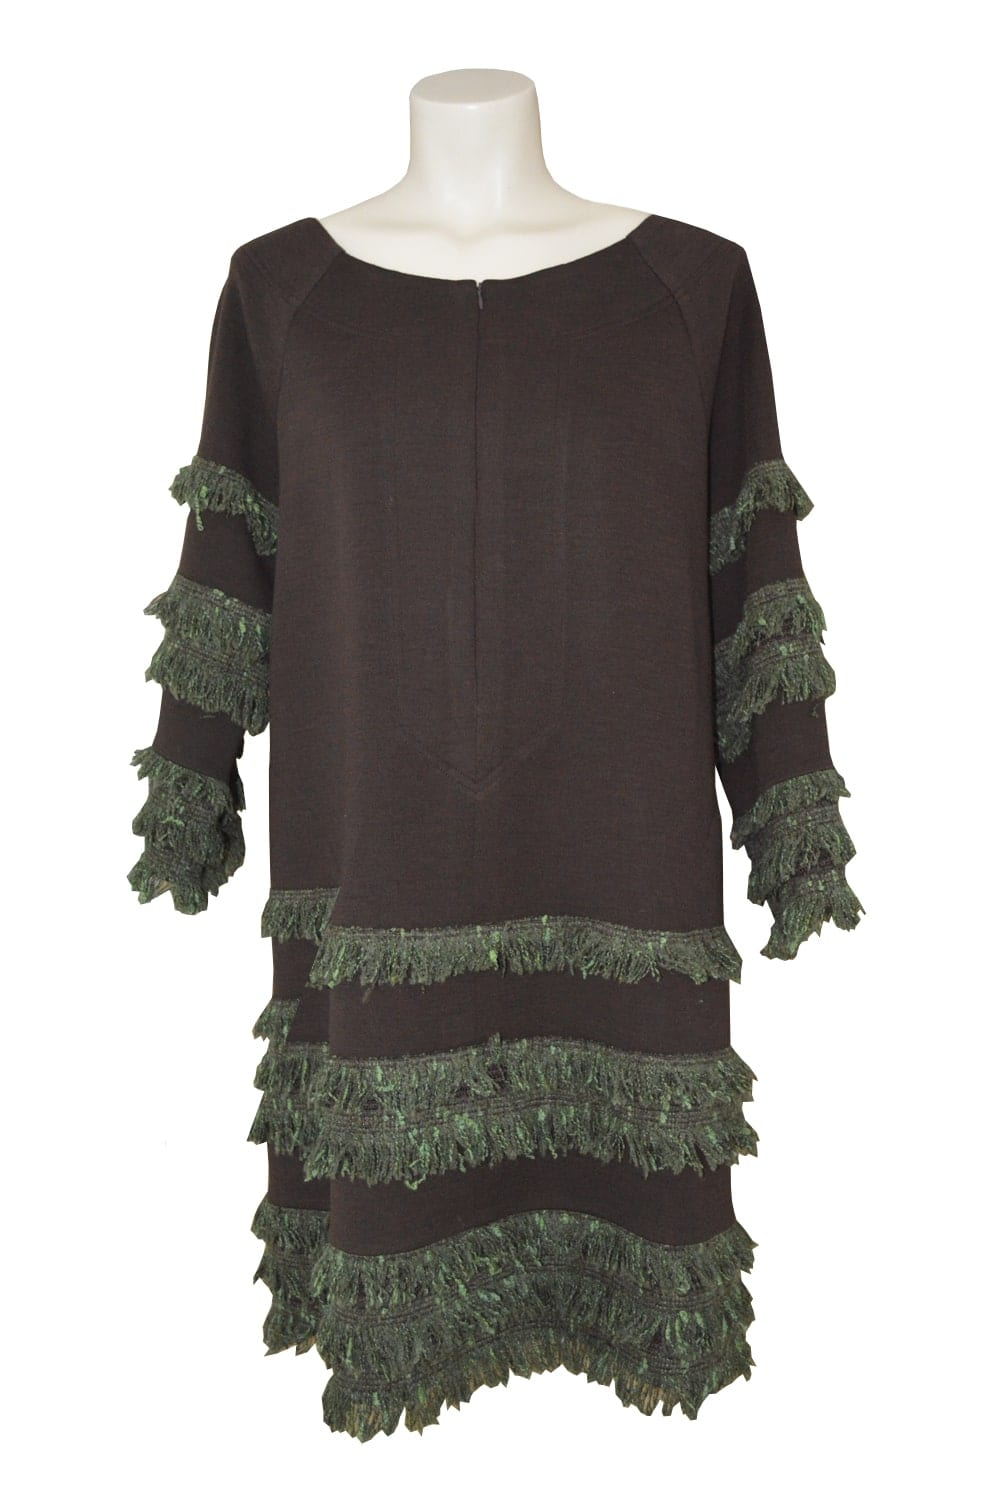 Flared dress in zipped wool jersey on the front. Round neckline decorated with strips of green tweed fringed. Side seam pockets.